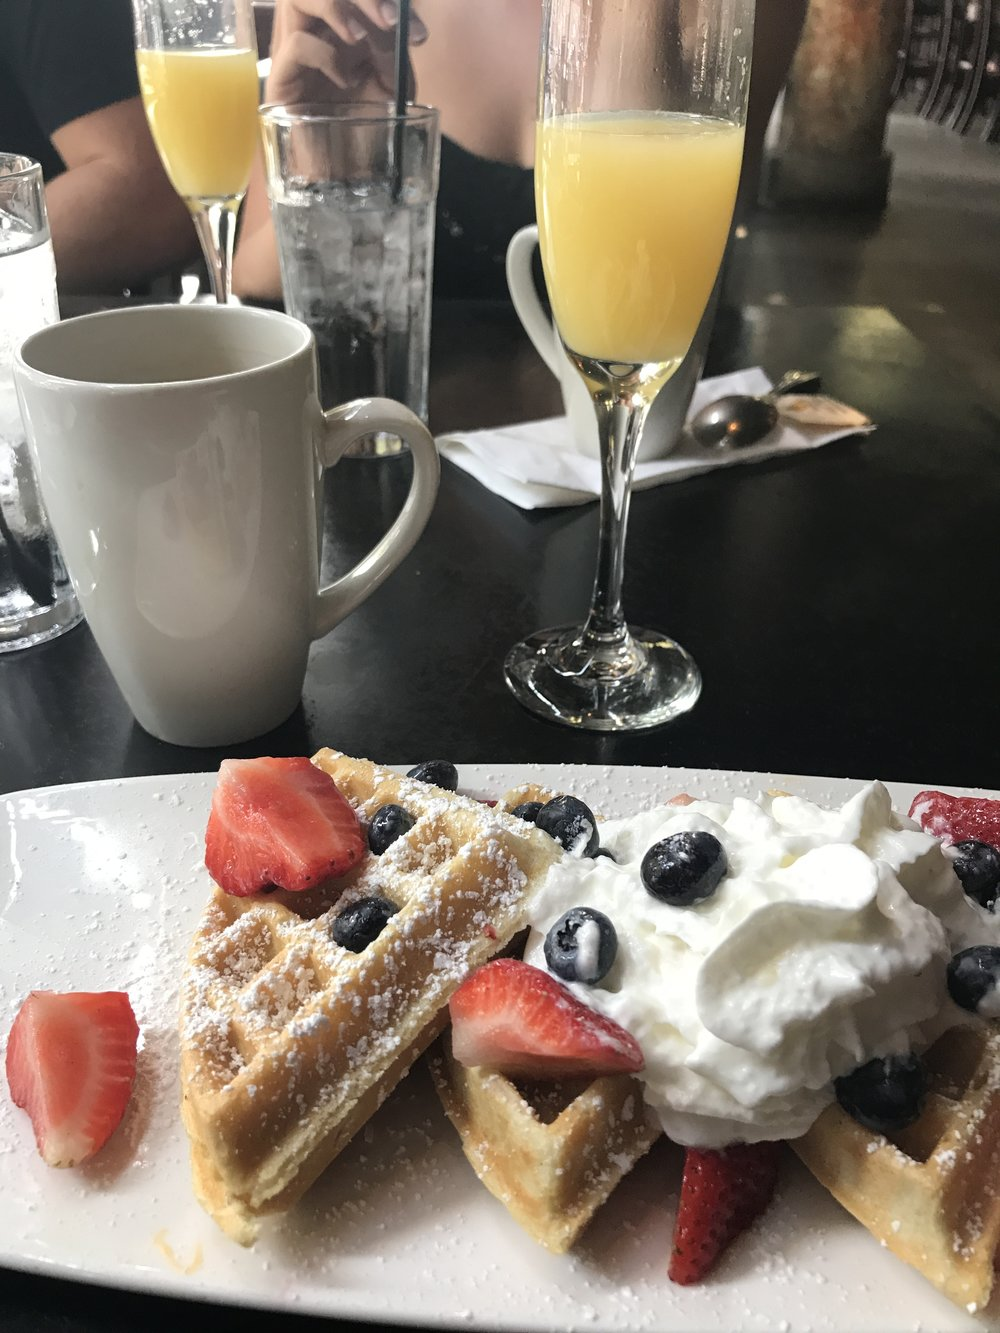 Labor Day Brunch - Bottomless mimosas are life.